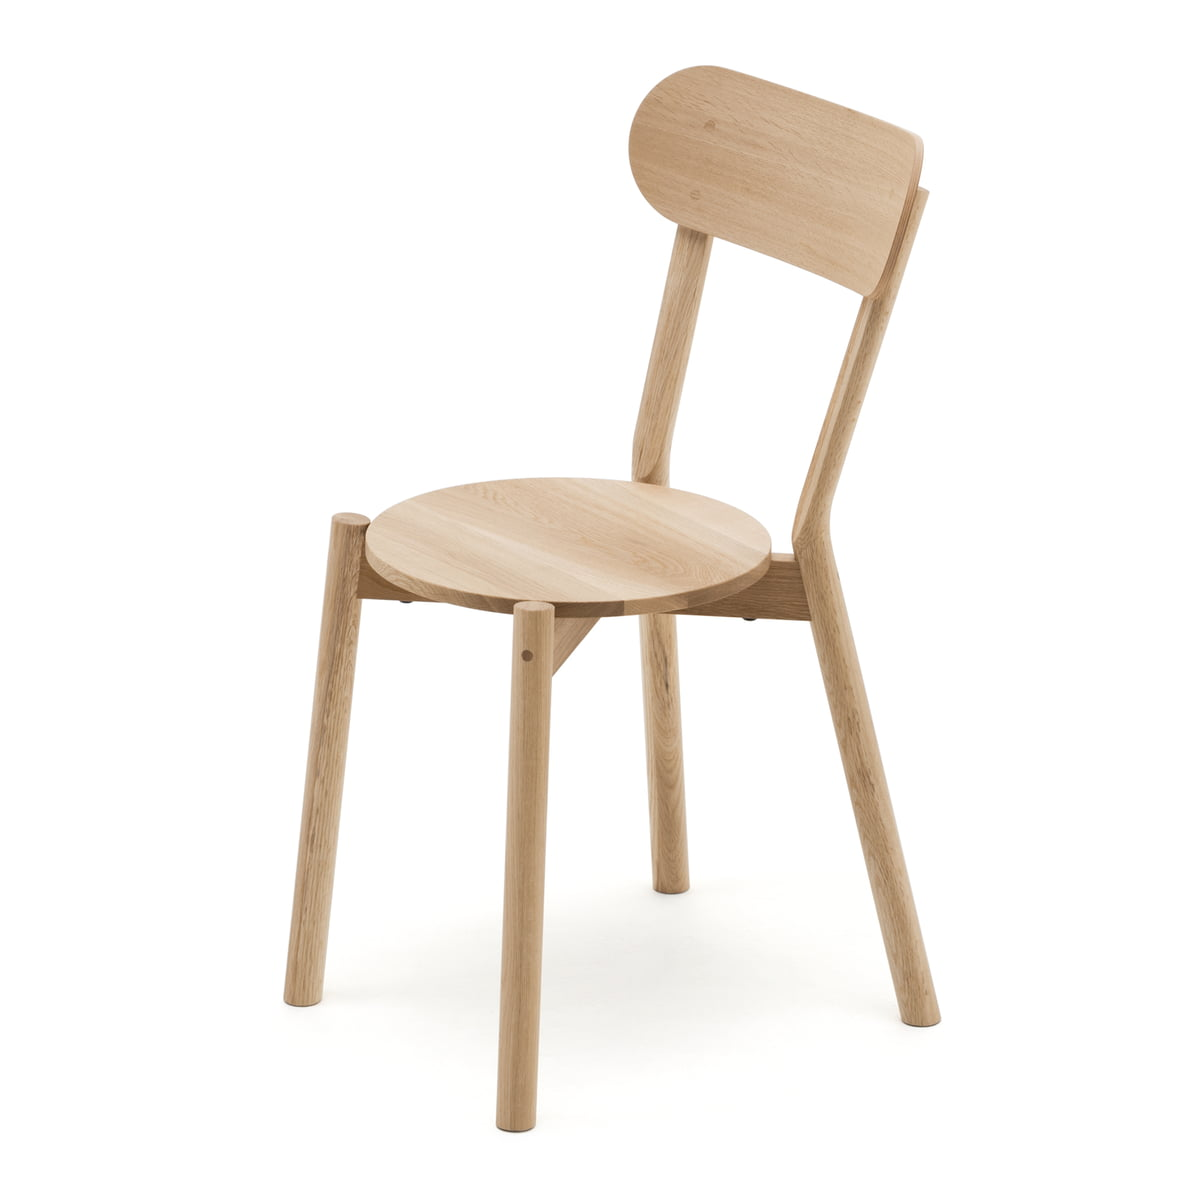 The Karimoku New Standard   Castor Chair In Natural